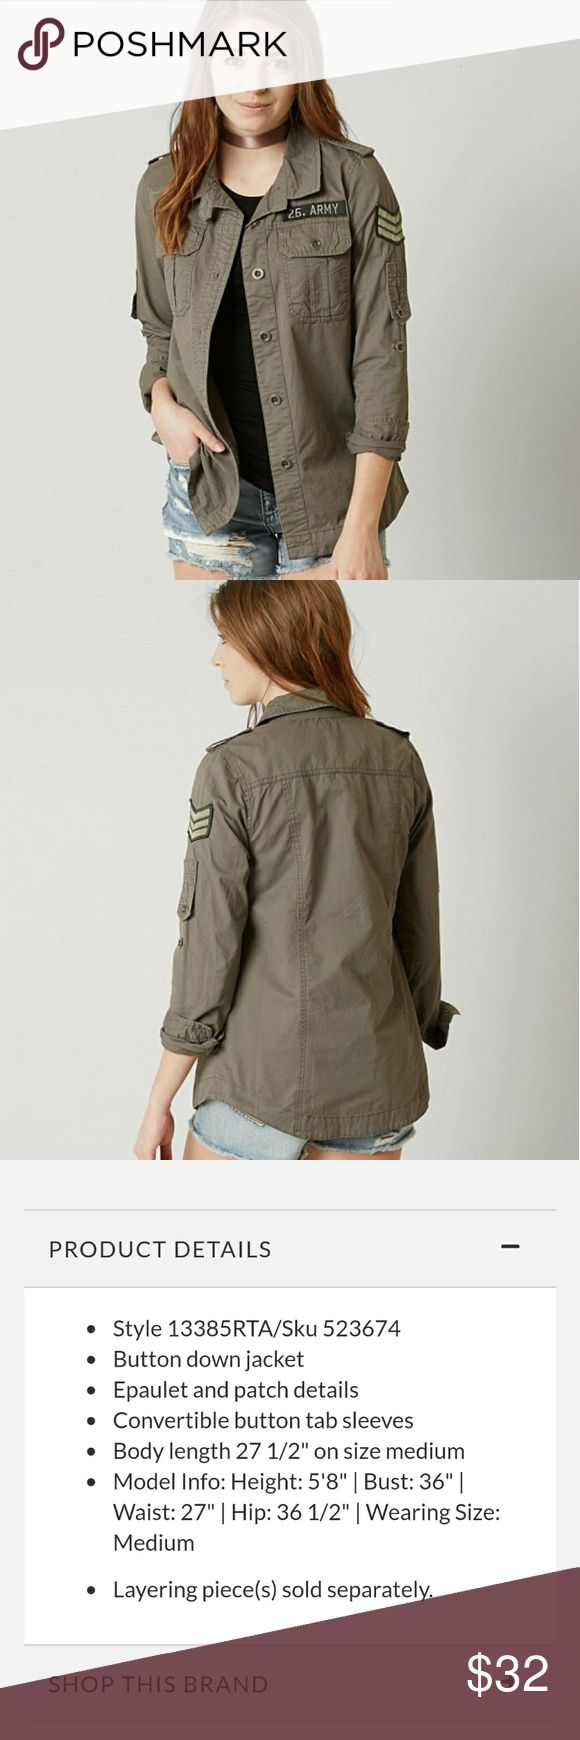 Canvas Utility Jacket Women's large. New condition. Cute army look. Jackets & Coats Utility Jackets